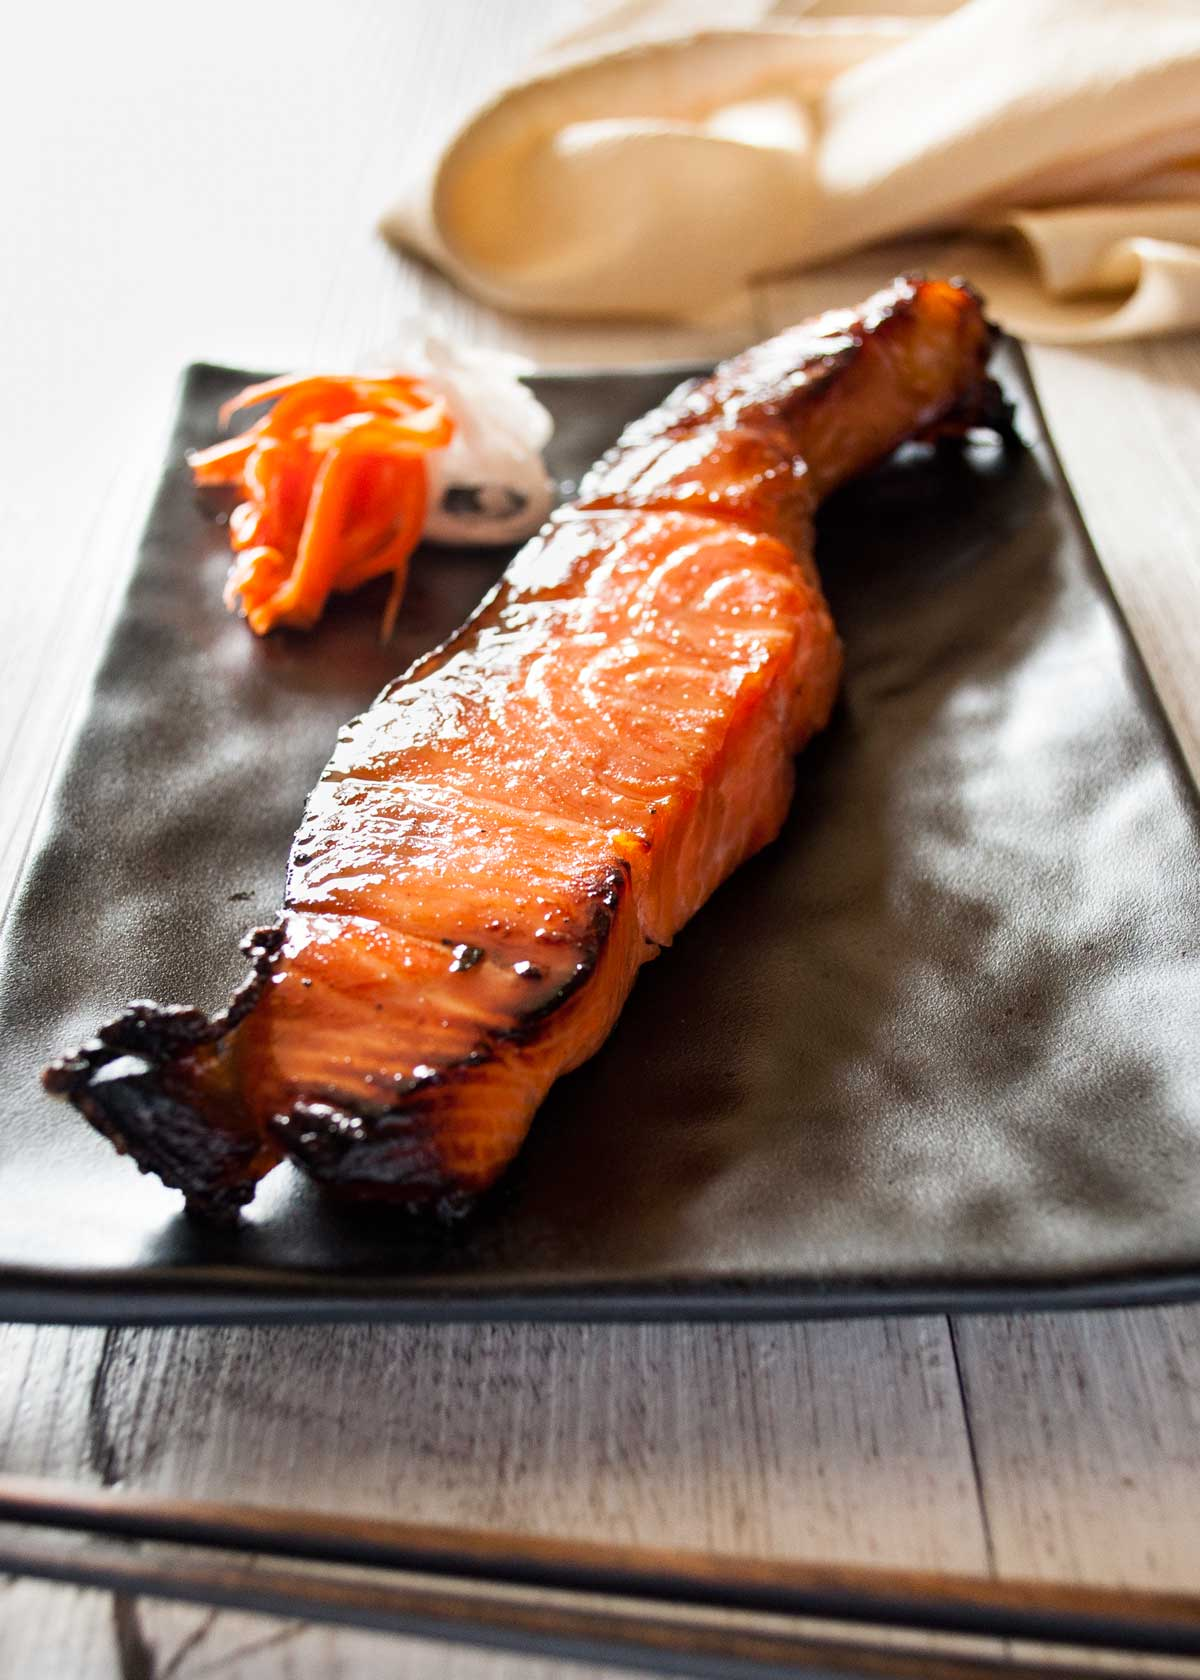 Japanese salmon mirin zuke mirin marinade recipetin japan japanese salmon mirinzuke simply marinating salmon with mirin soy sauce and sugar forumfinder Choice Image